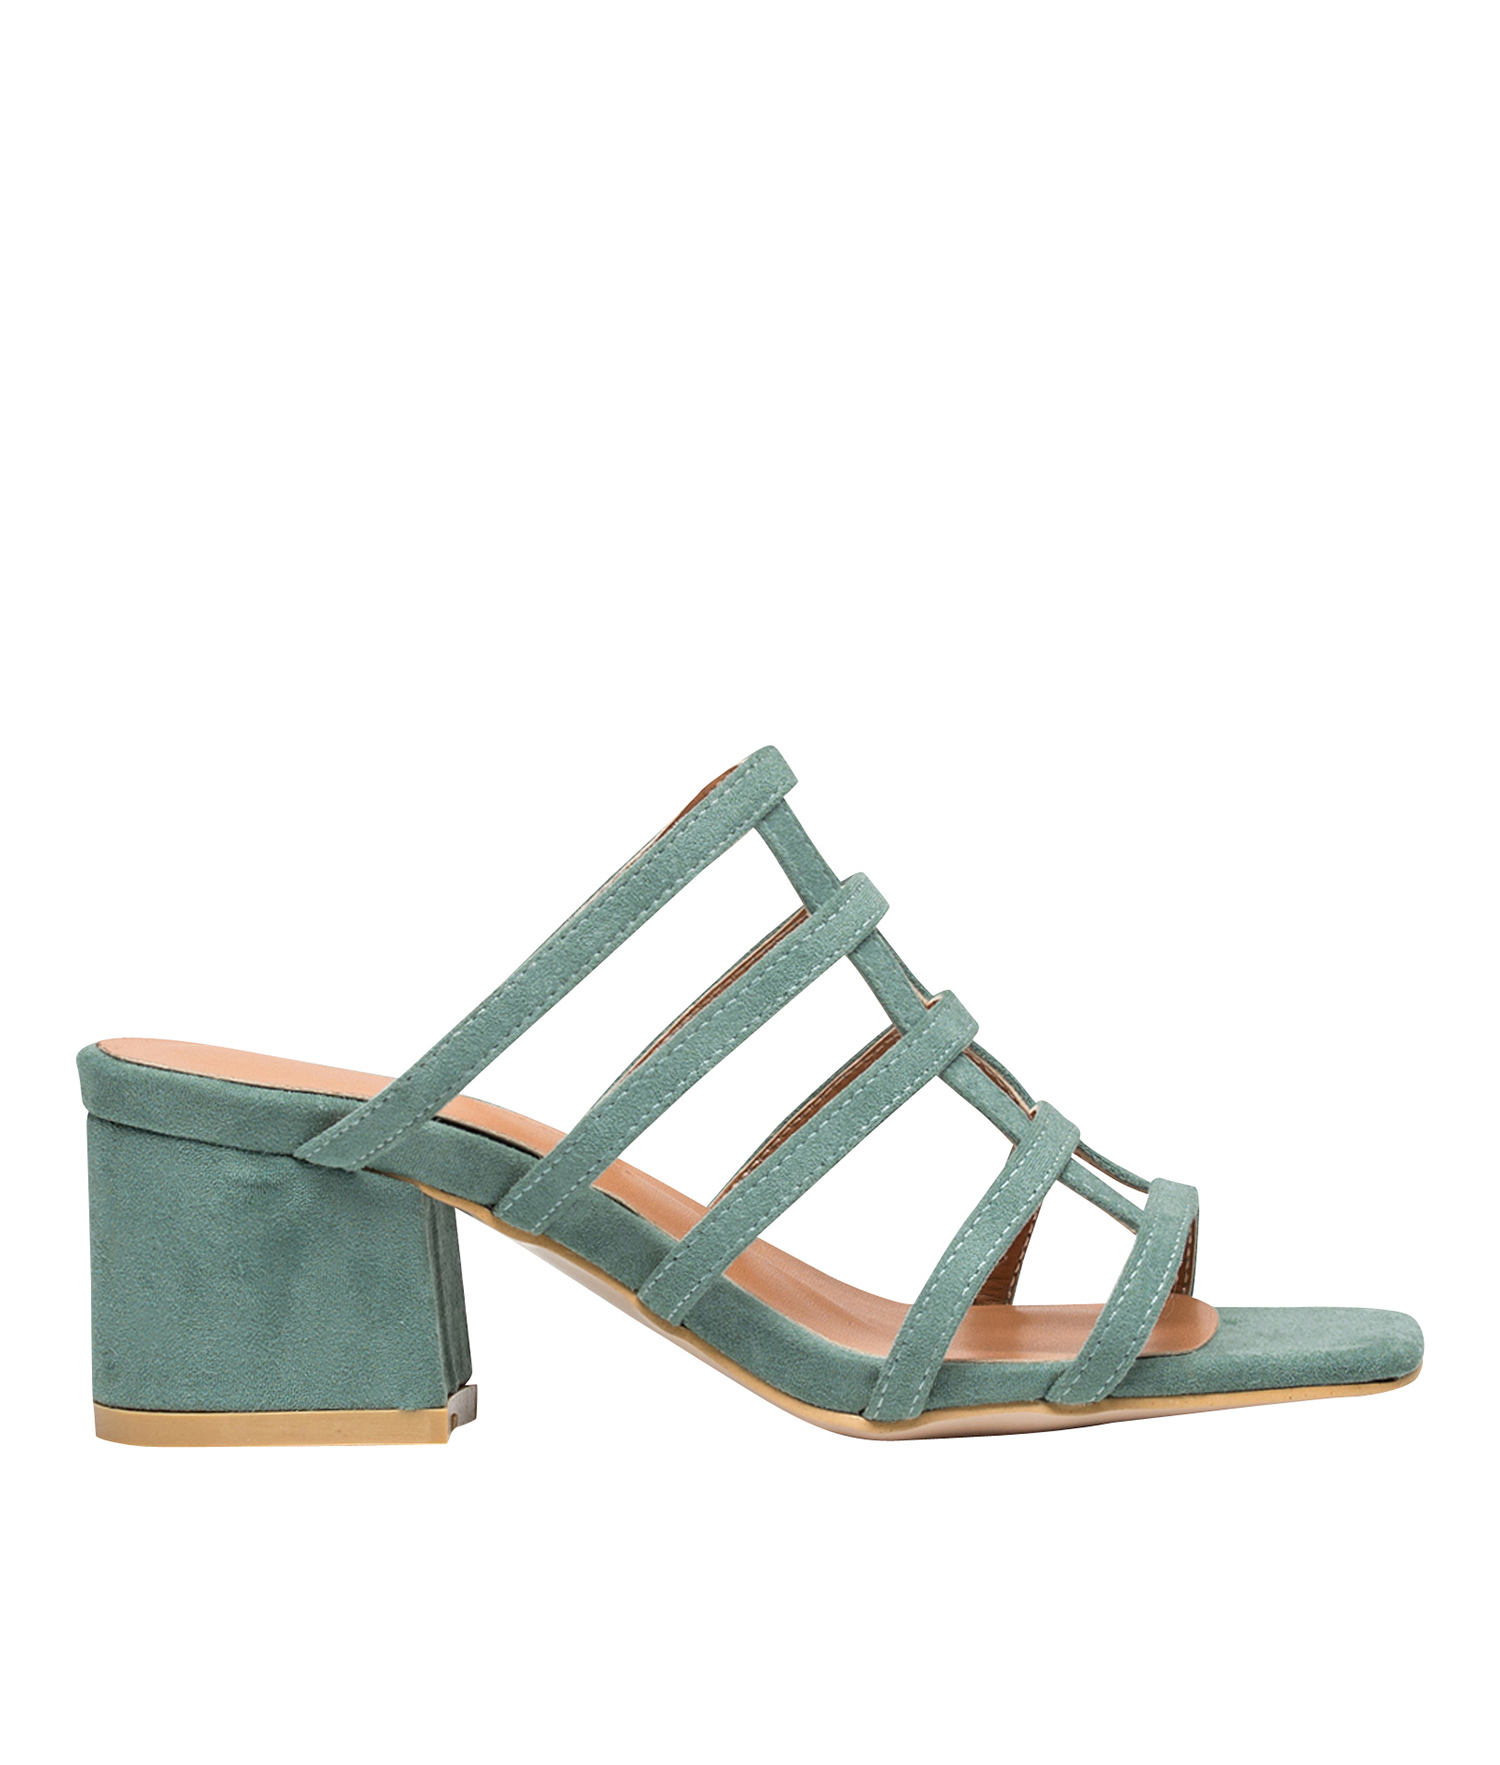 daa18a8766c AnnaKastle Womens Suede Cut Out Strappy Mule Slipper Sandals Mint